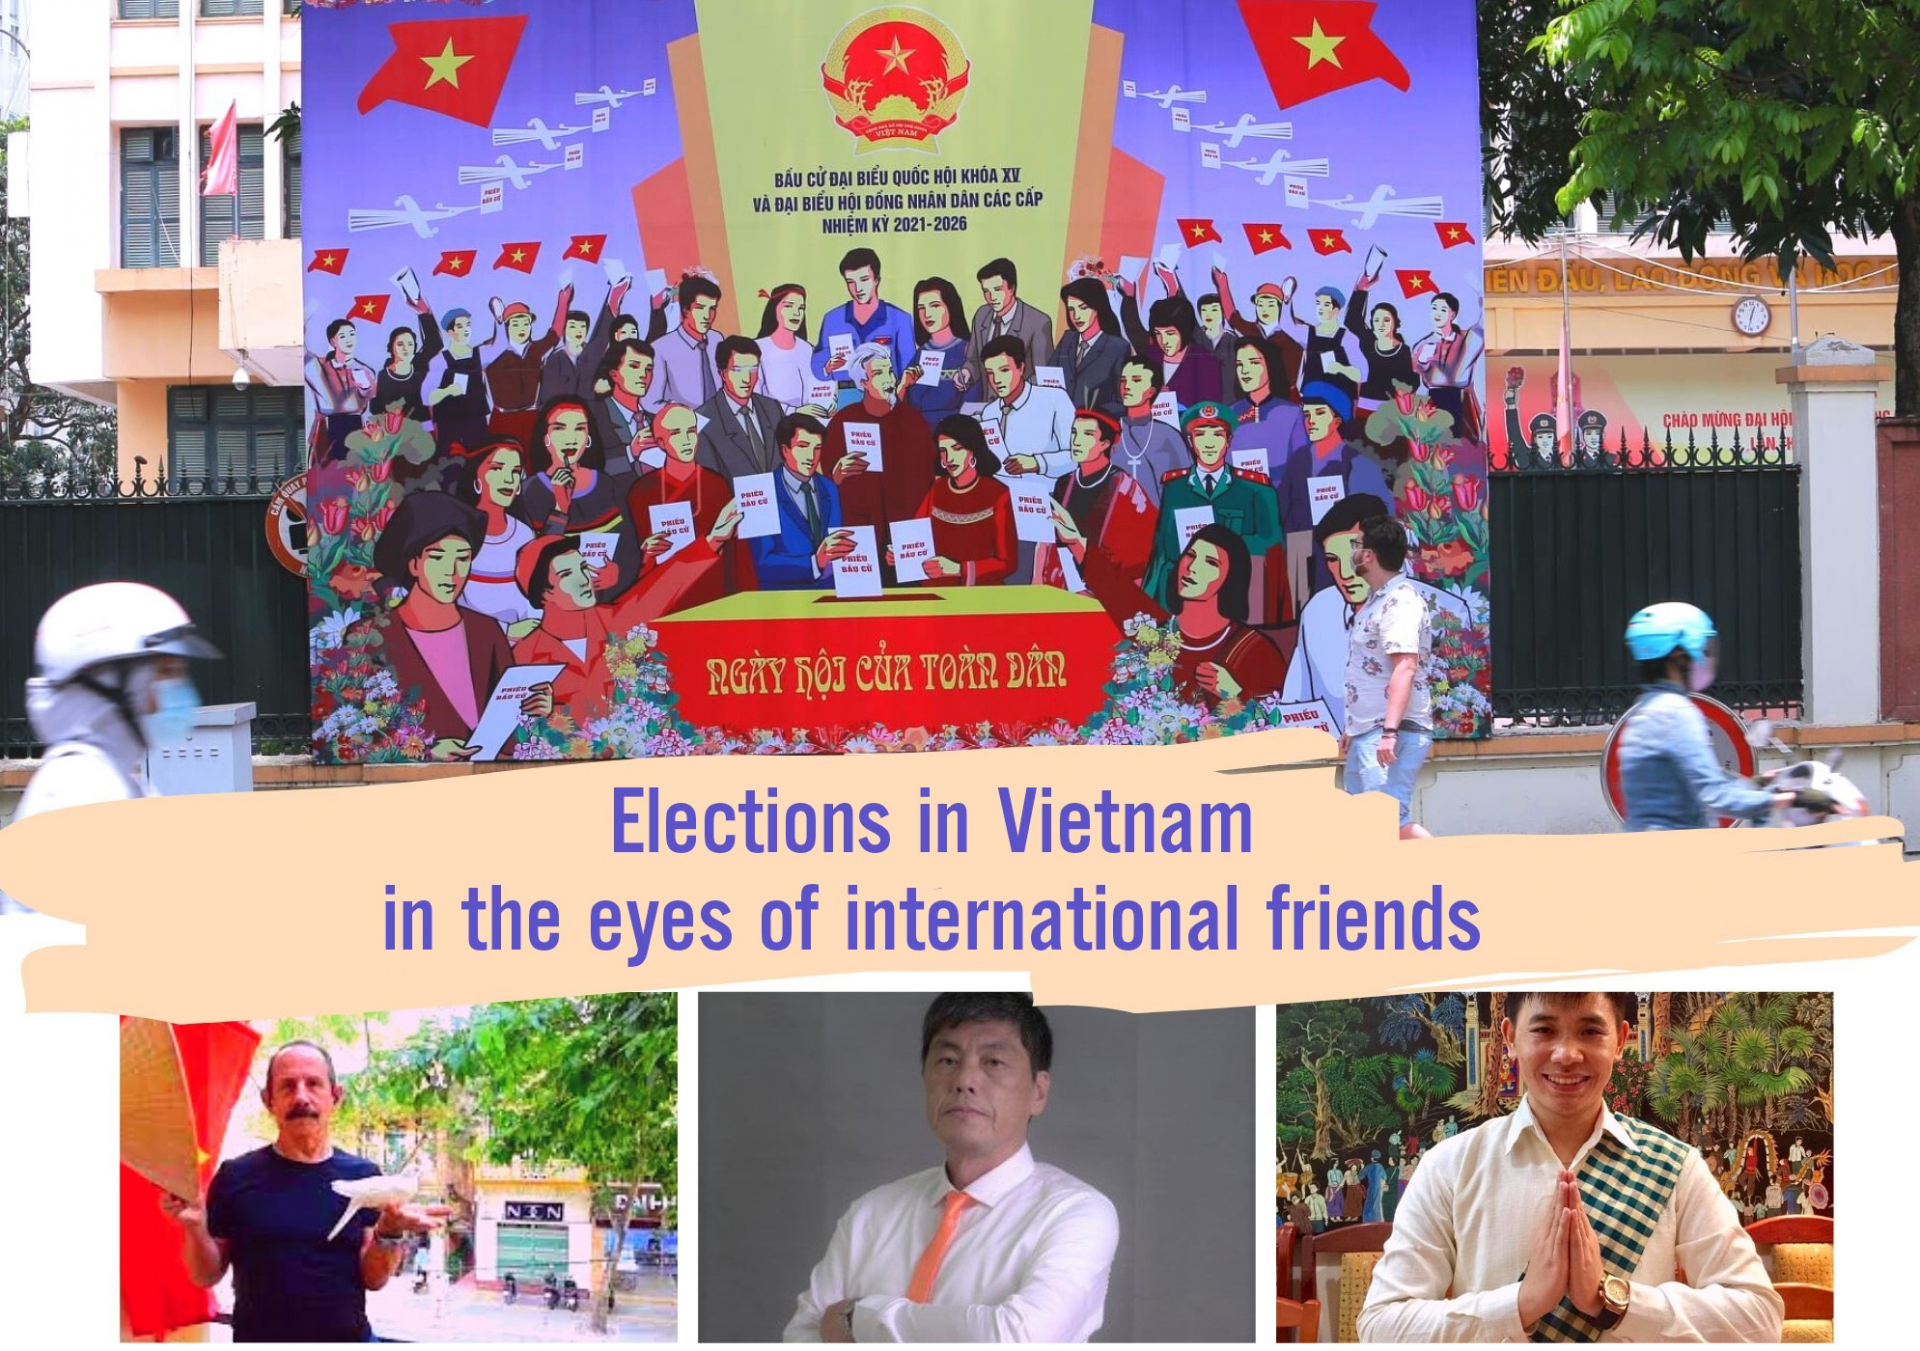 Vietnam's election in the eyes of international friends: Bright faith